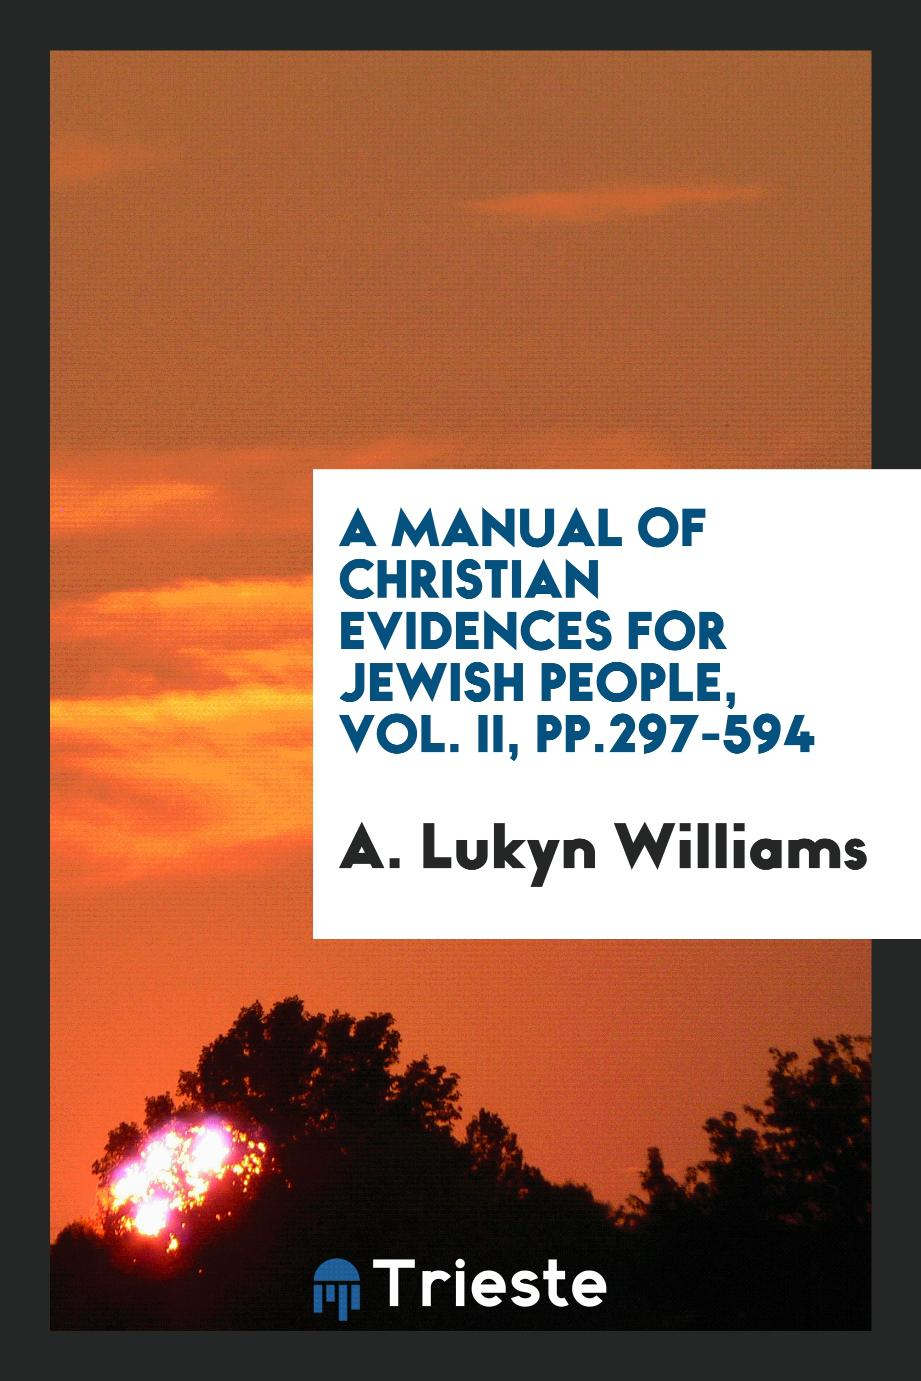 A manual of Christian evidences for Jewish people, Vol. II, pp.297-594